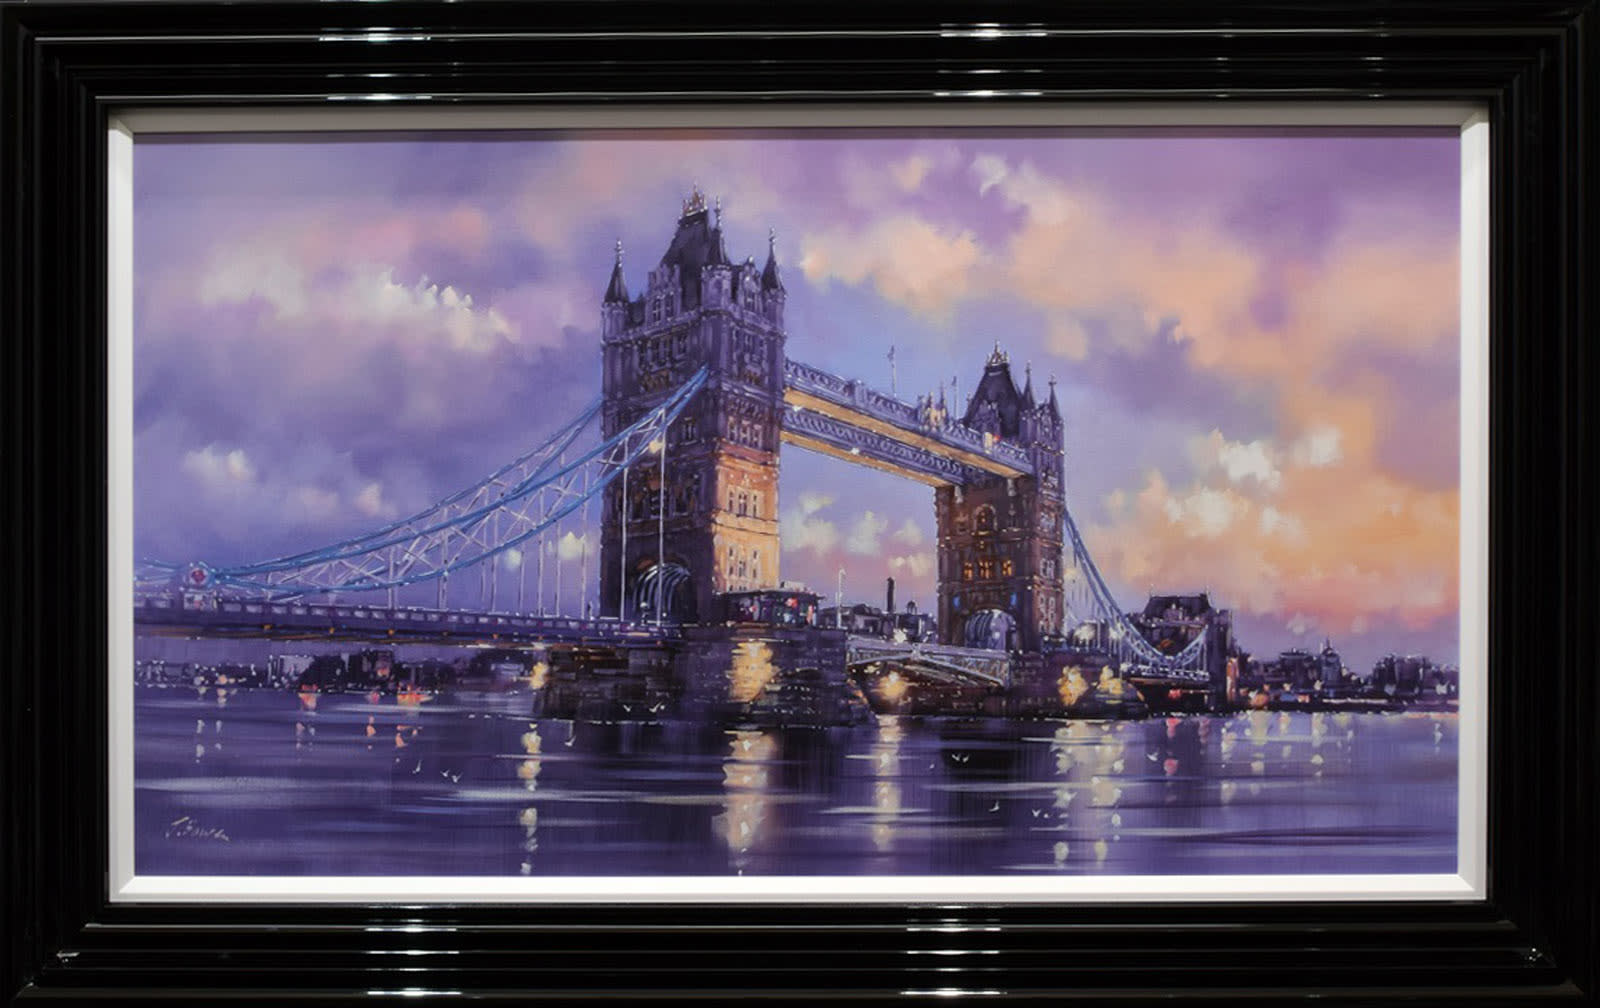 Tower Bridge Glow, Joe Bowen